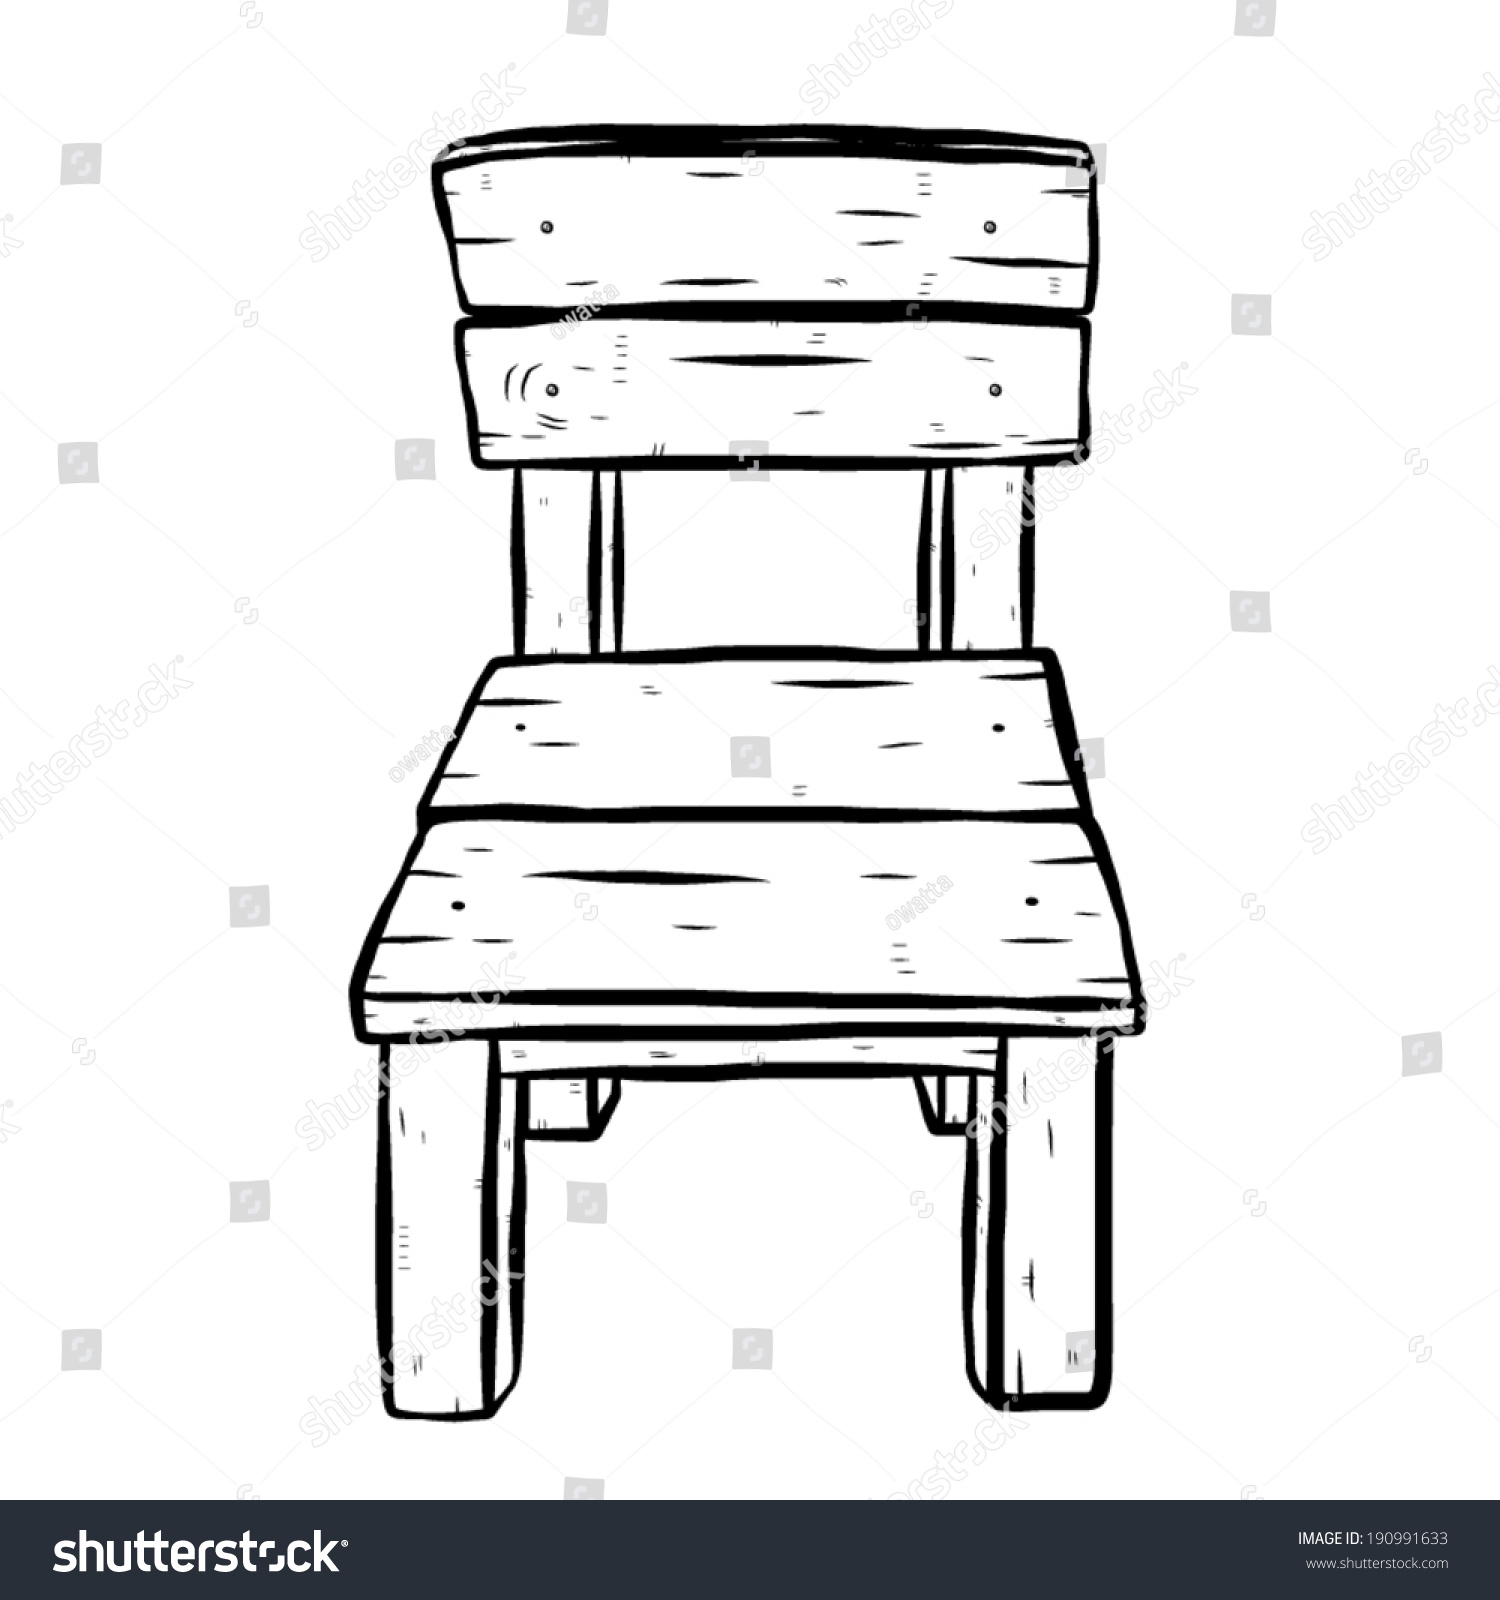 Black chair and white chair - Stock Vector Wooden Chair Cartoon Vector And Illustration Black And White Hand Drawn Sketch Style Isolated